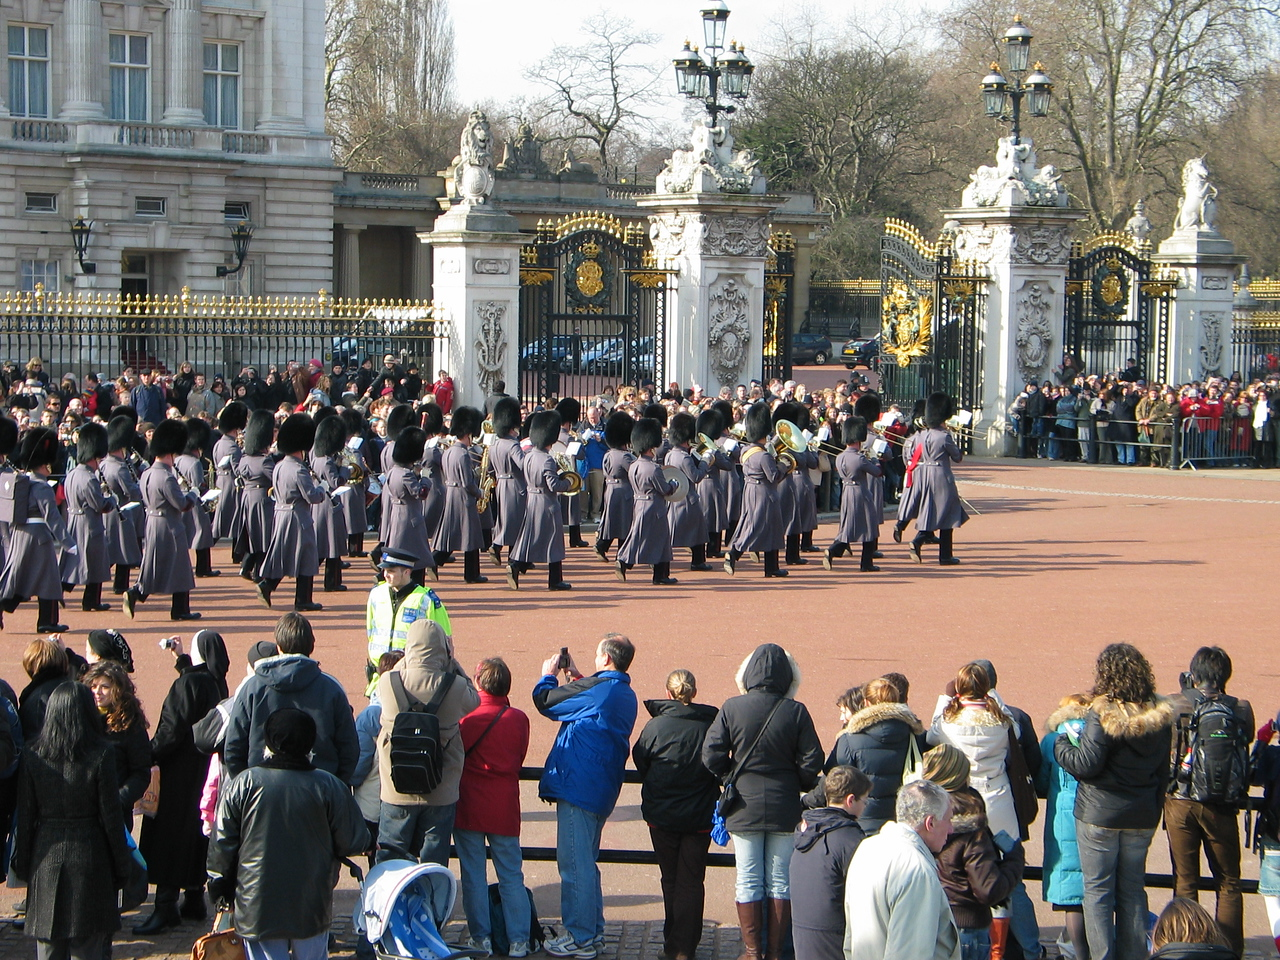 <b>Changing of the guard at Buckingham Palace.</b>